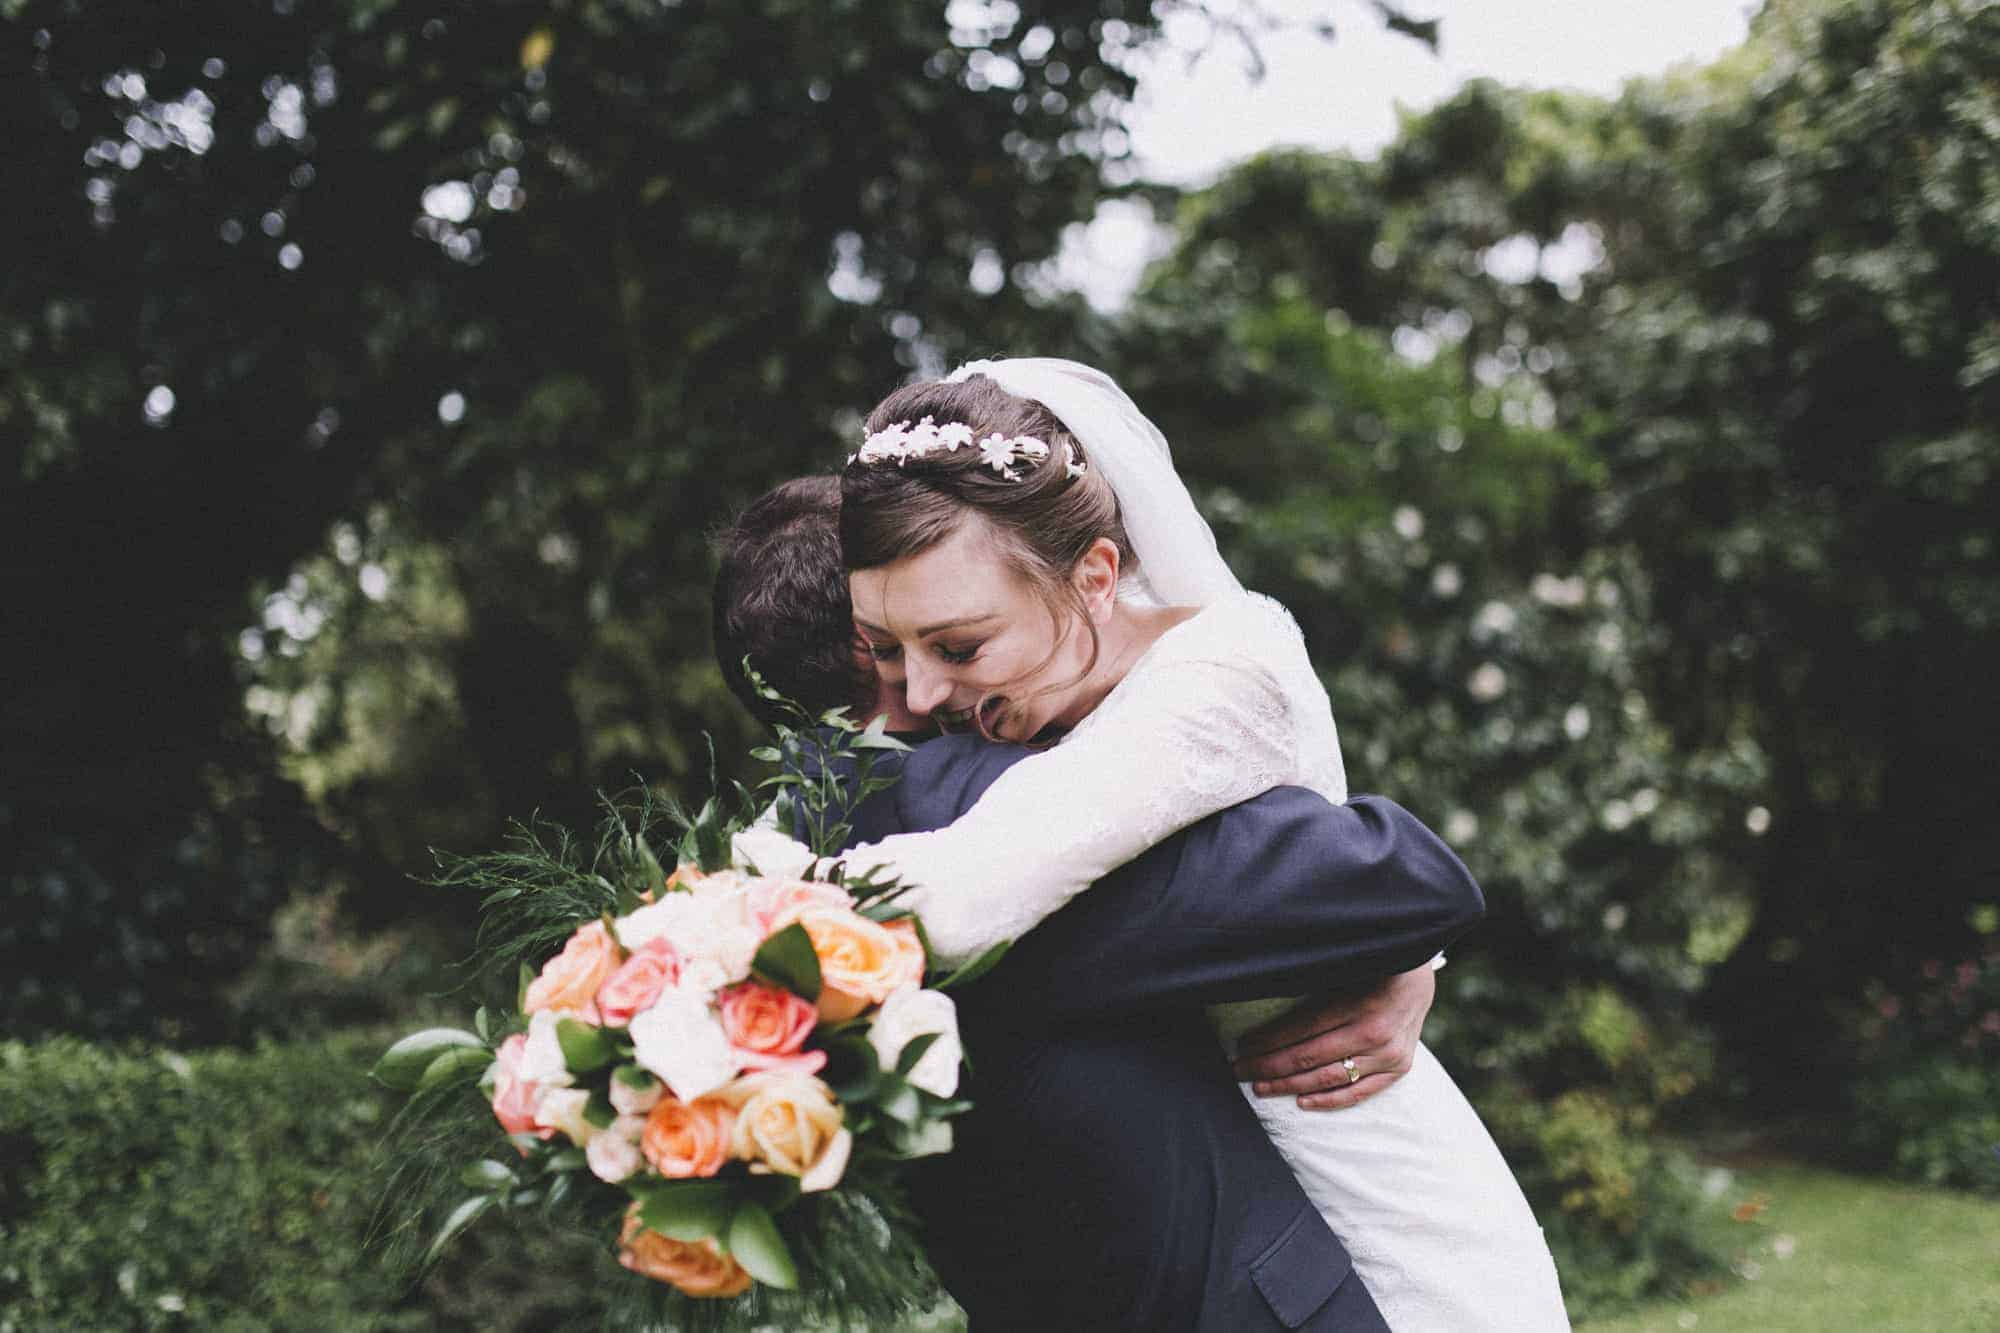 New Zealand wedding photography of a happy bride and groom after the wedding ceremony